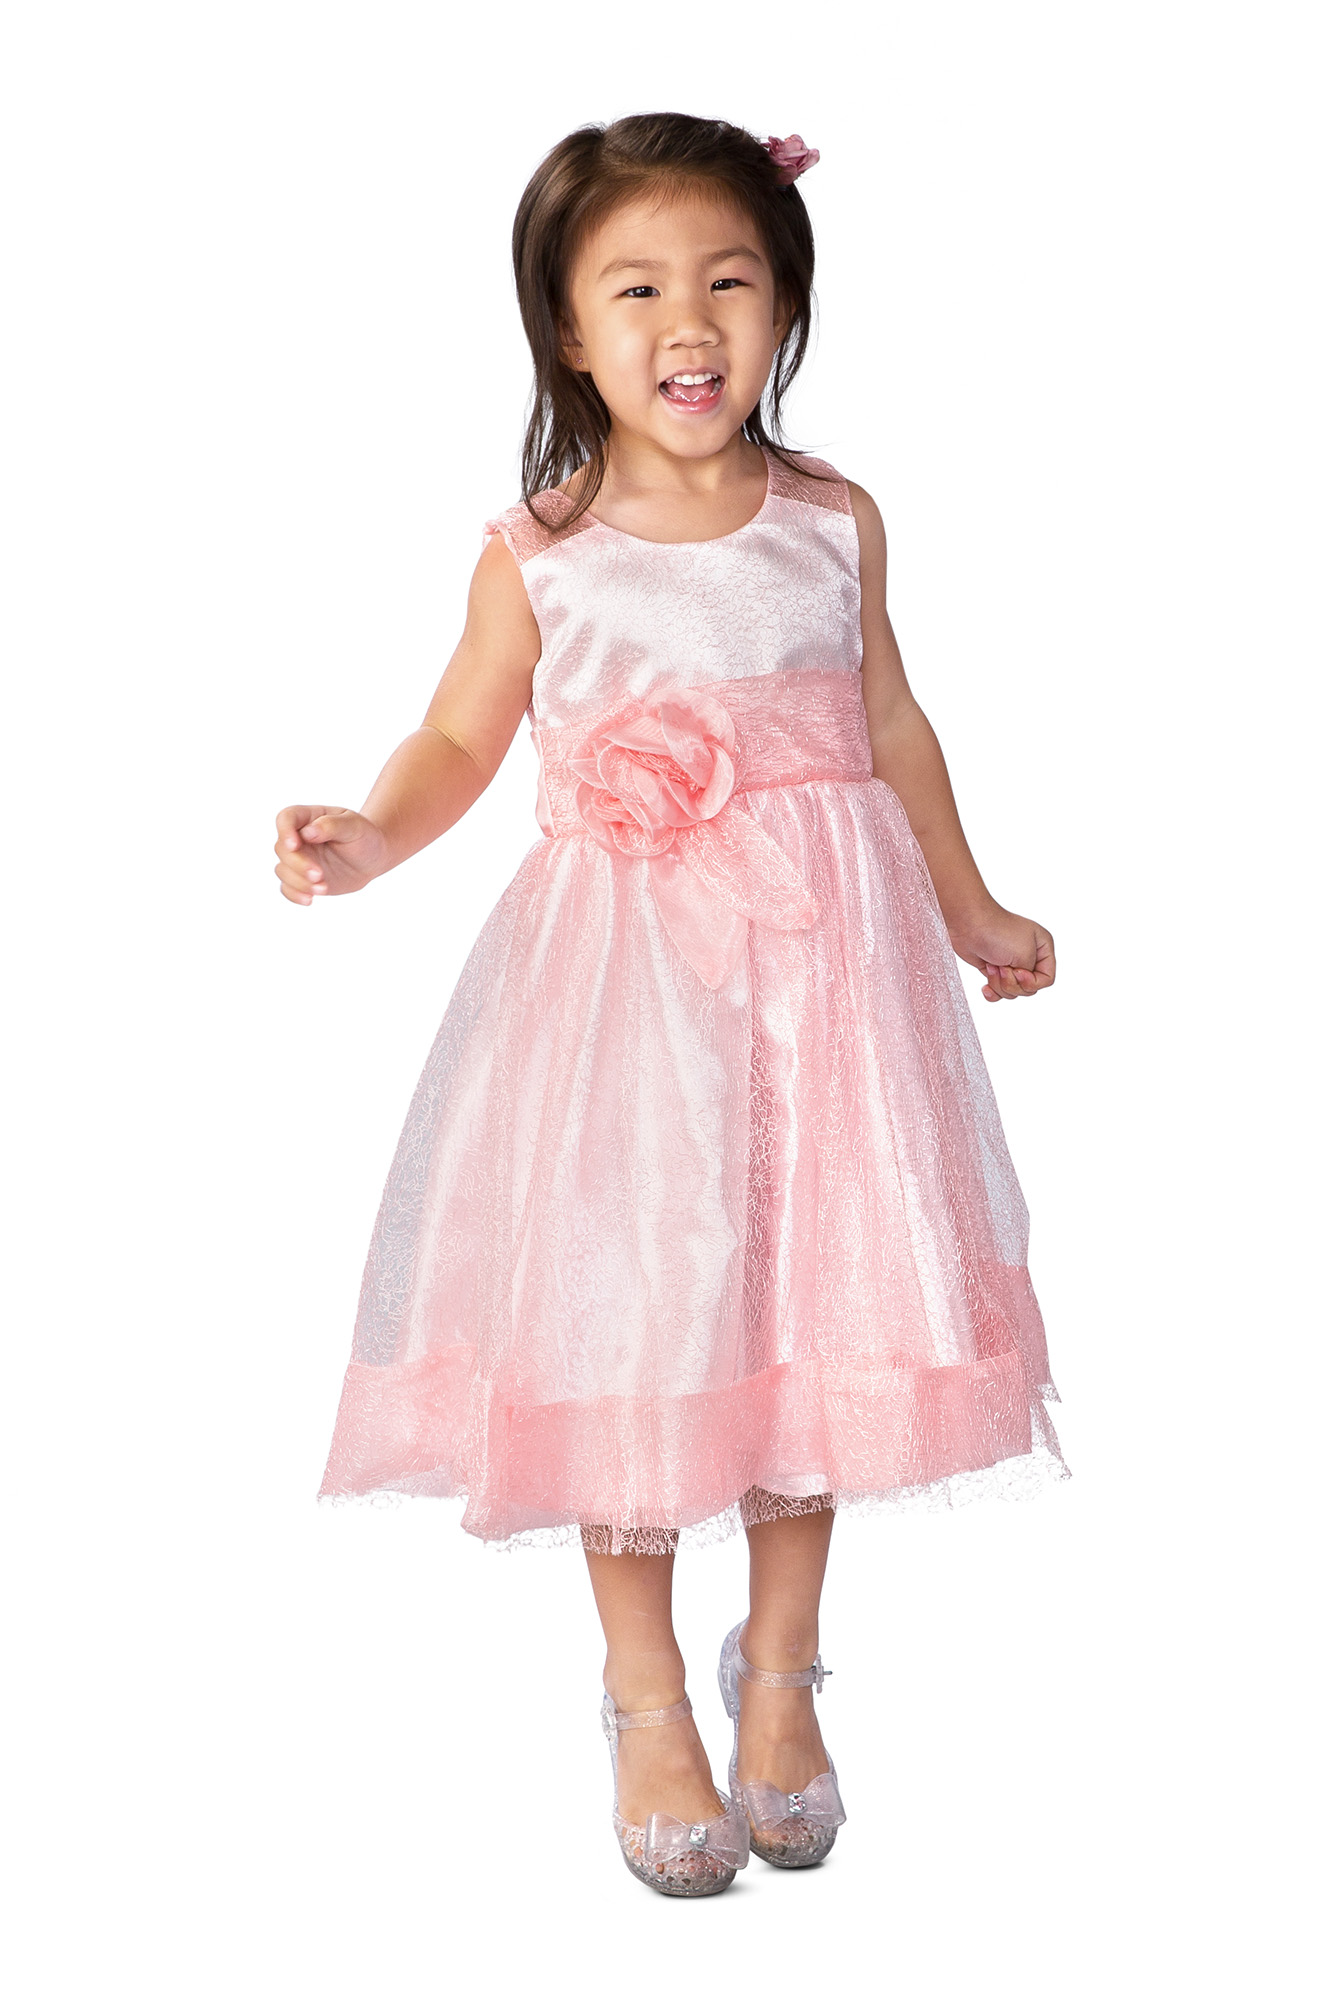 Where to buy Flower Girl Dresses? | The Wedding Vow